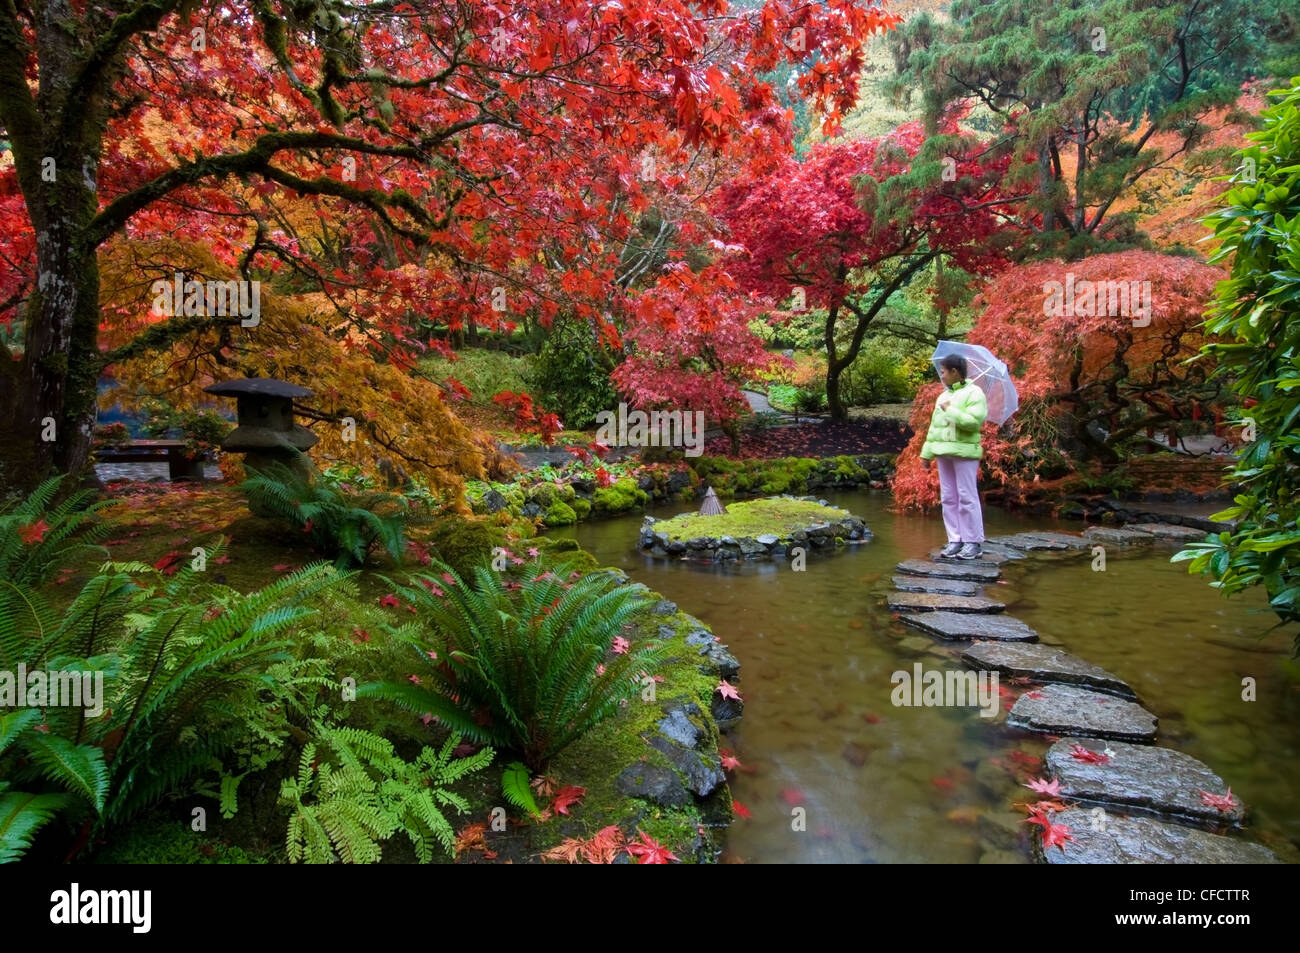 Red Japanese Umbrella In Garden Stock Photos & Red Japanese Umbrella ...